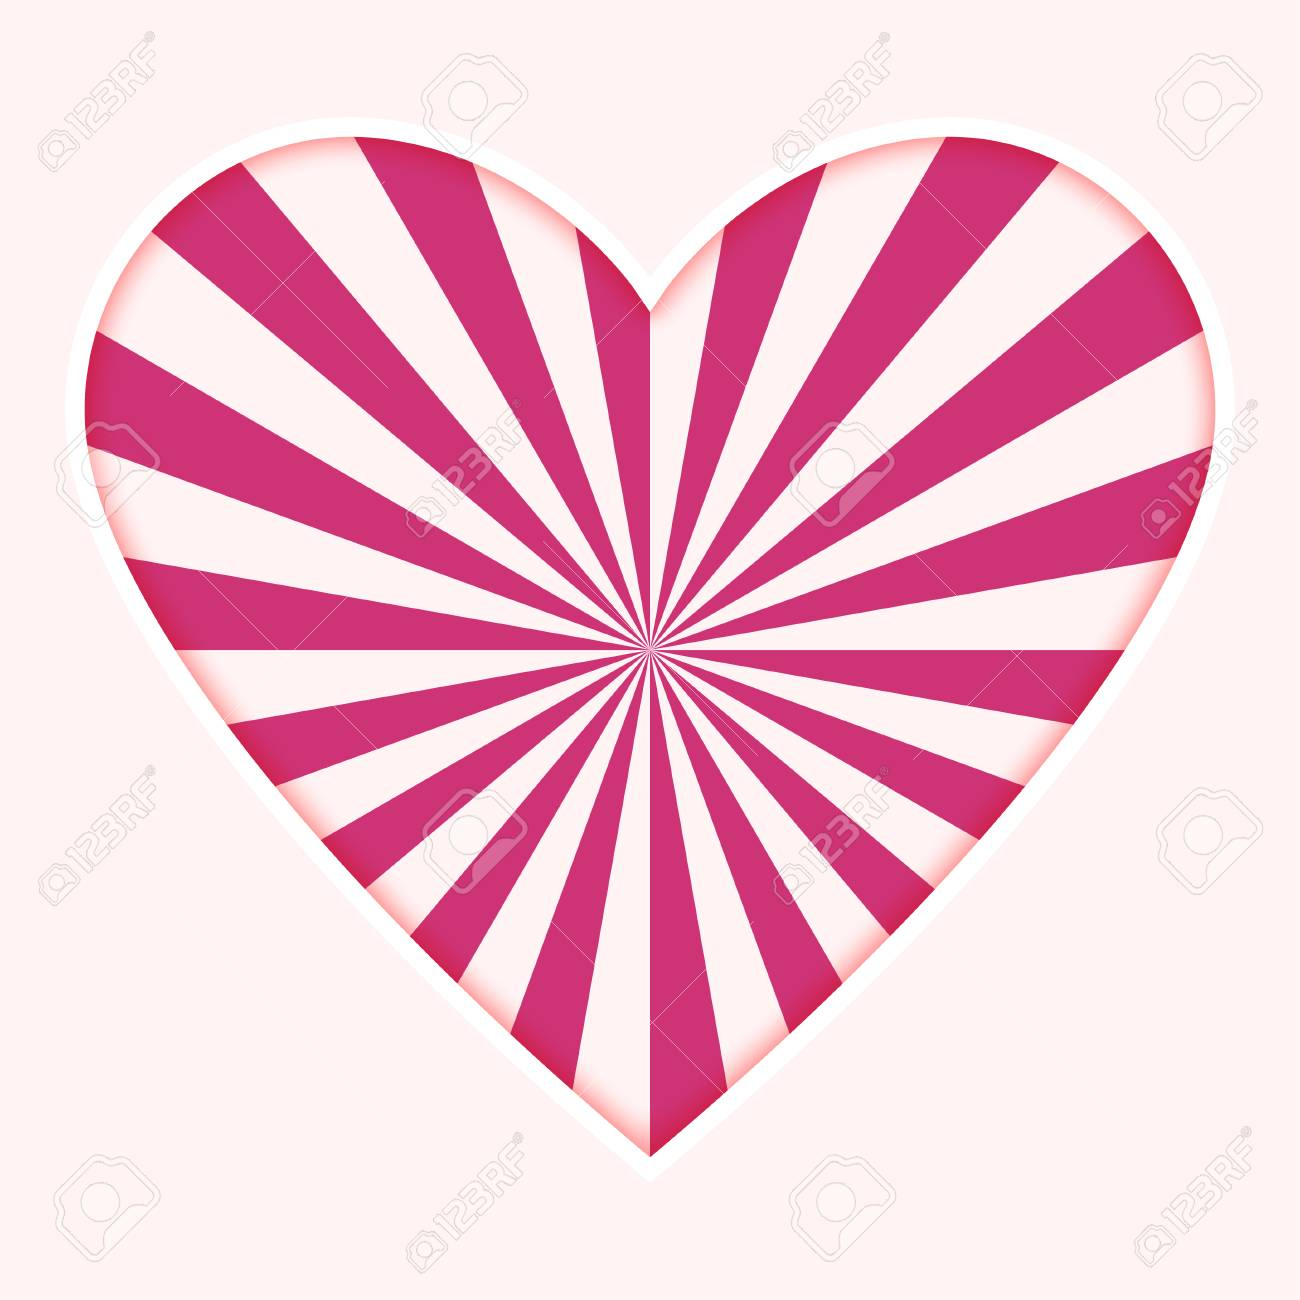 sun ray heart valentine s day background design sweet pink two rh 123rf com sun ray vector tutorial sun ray vector art